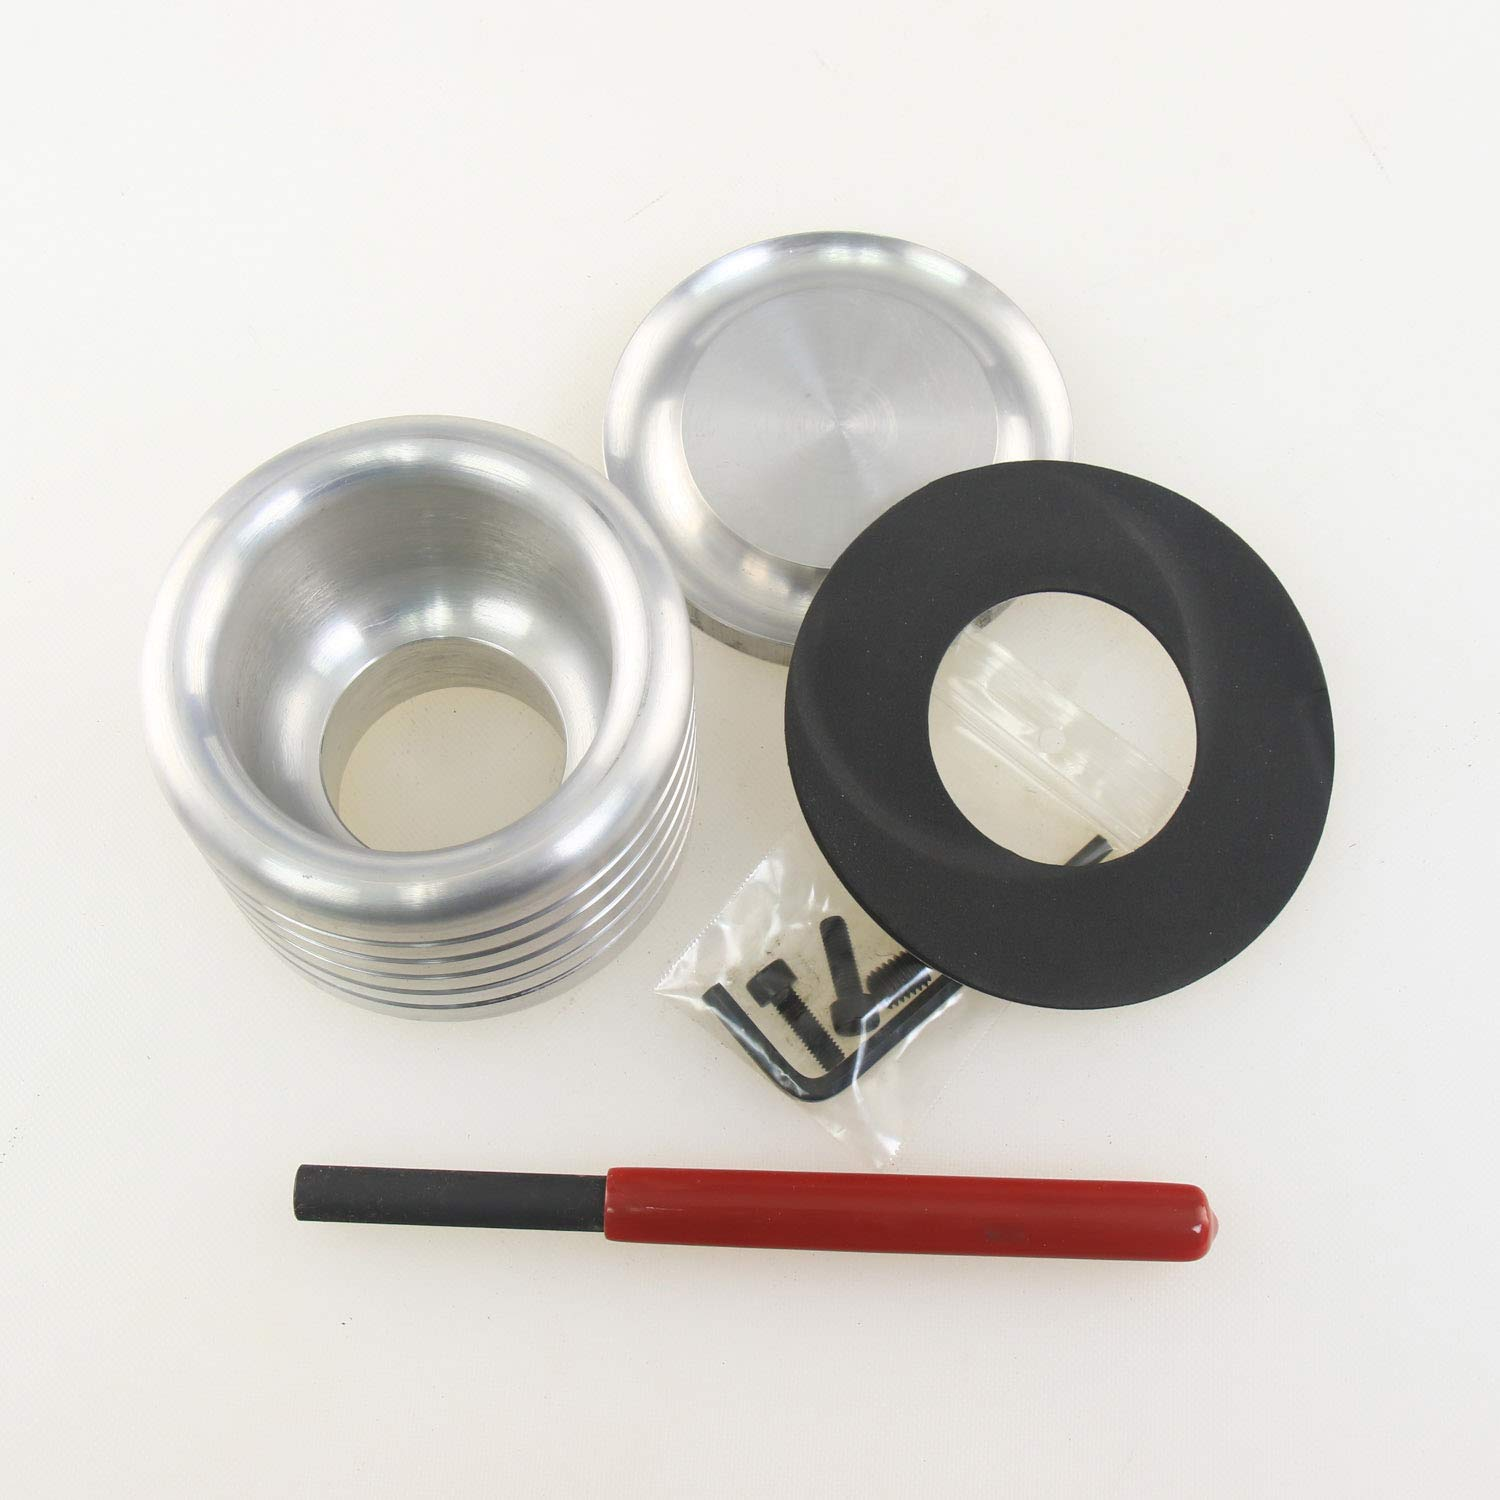 """Oneway 3-1//2/"""" Drum for Vacuum Chuck with M33 x 3.5mm Insert and Bonus Hurricane Safety Kit"""